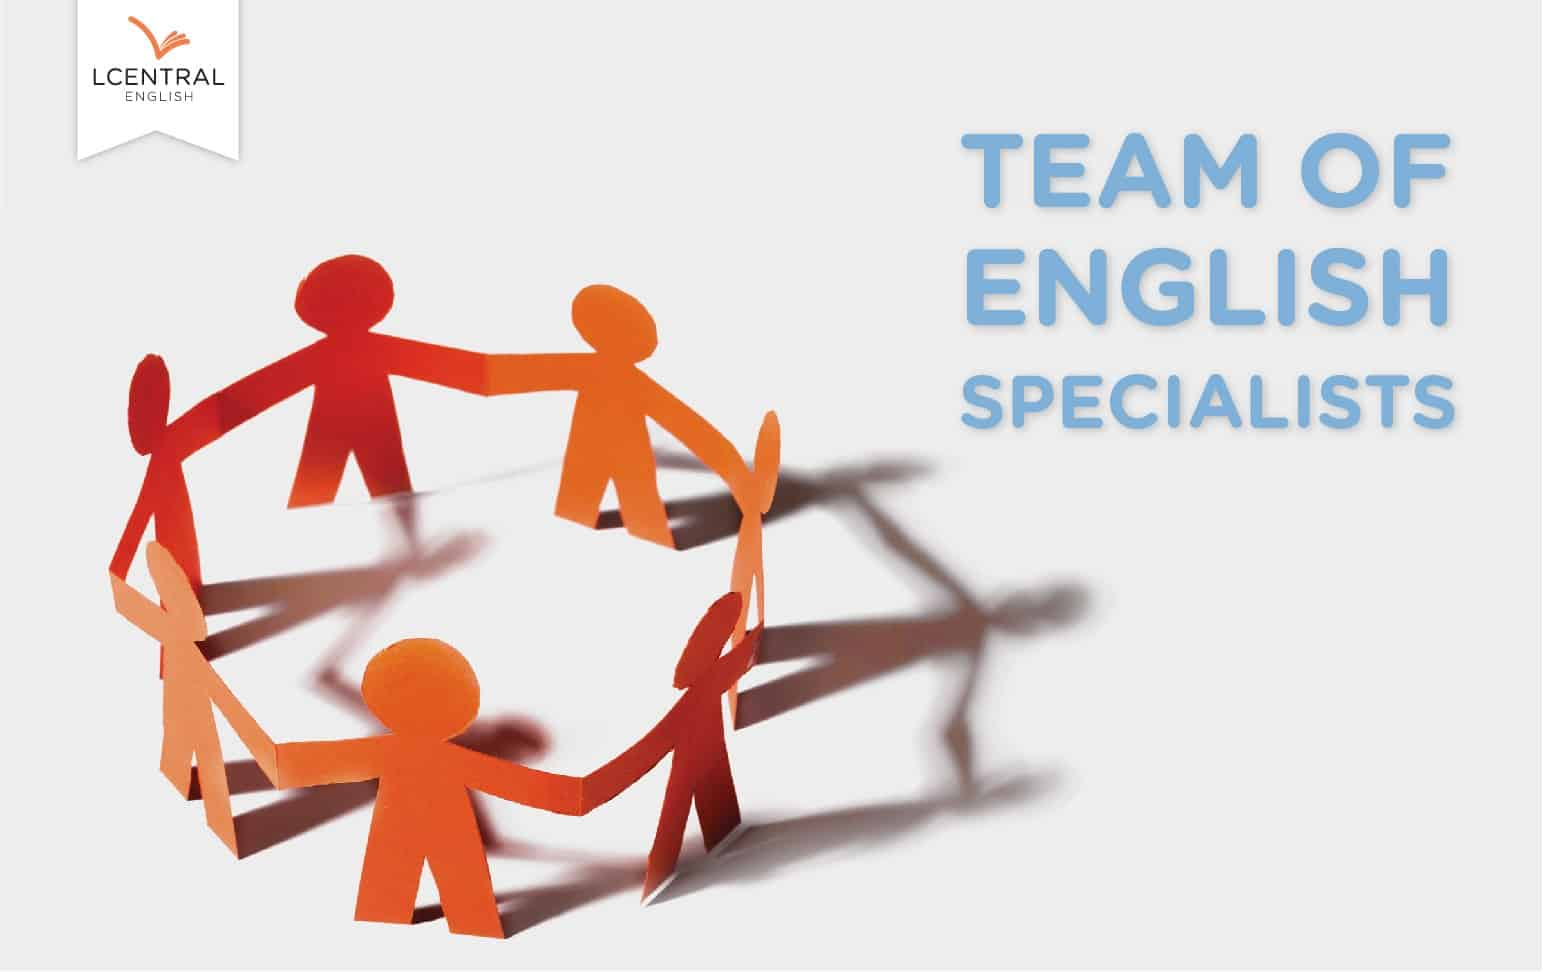 Blog author LCentral team of English specialists